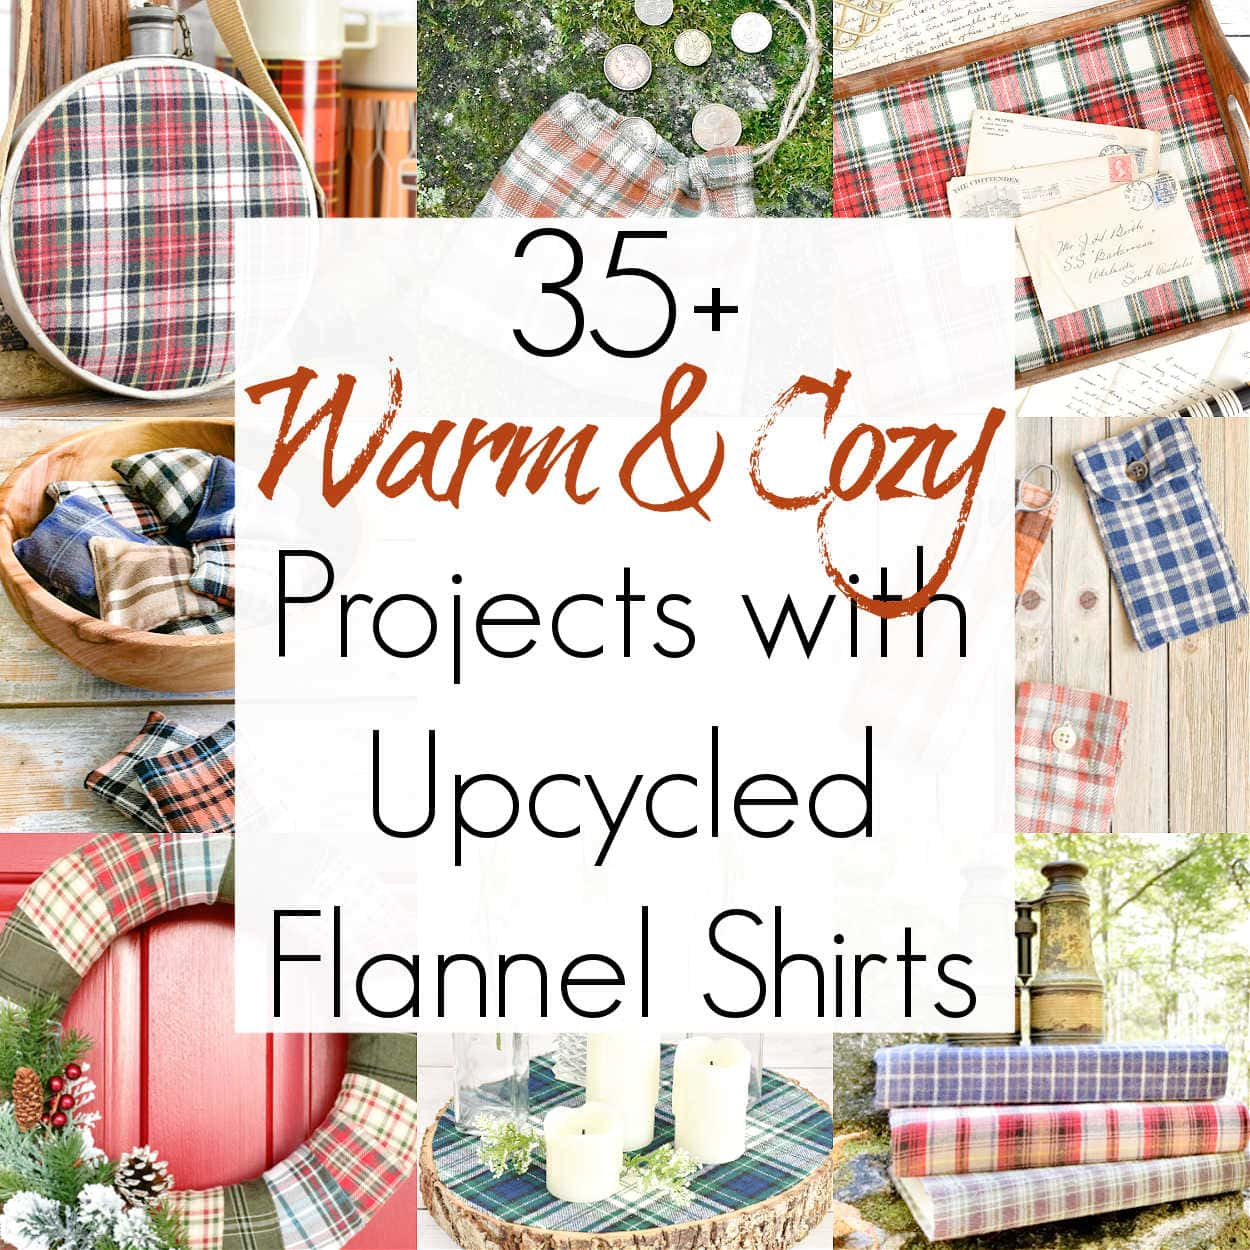 Craft Projects with Upcycled Flannel Shirts